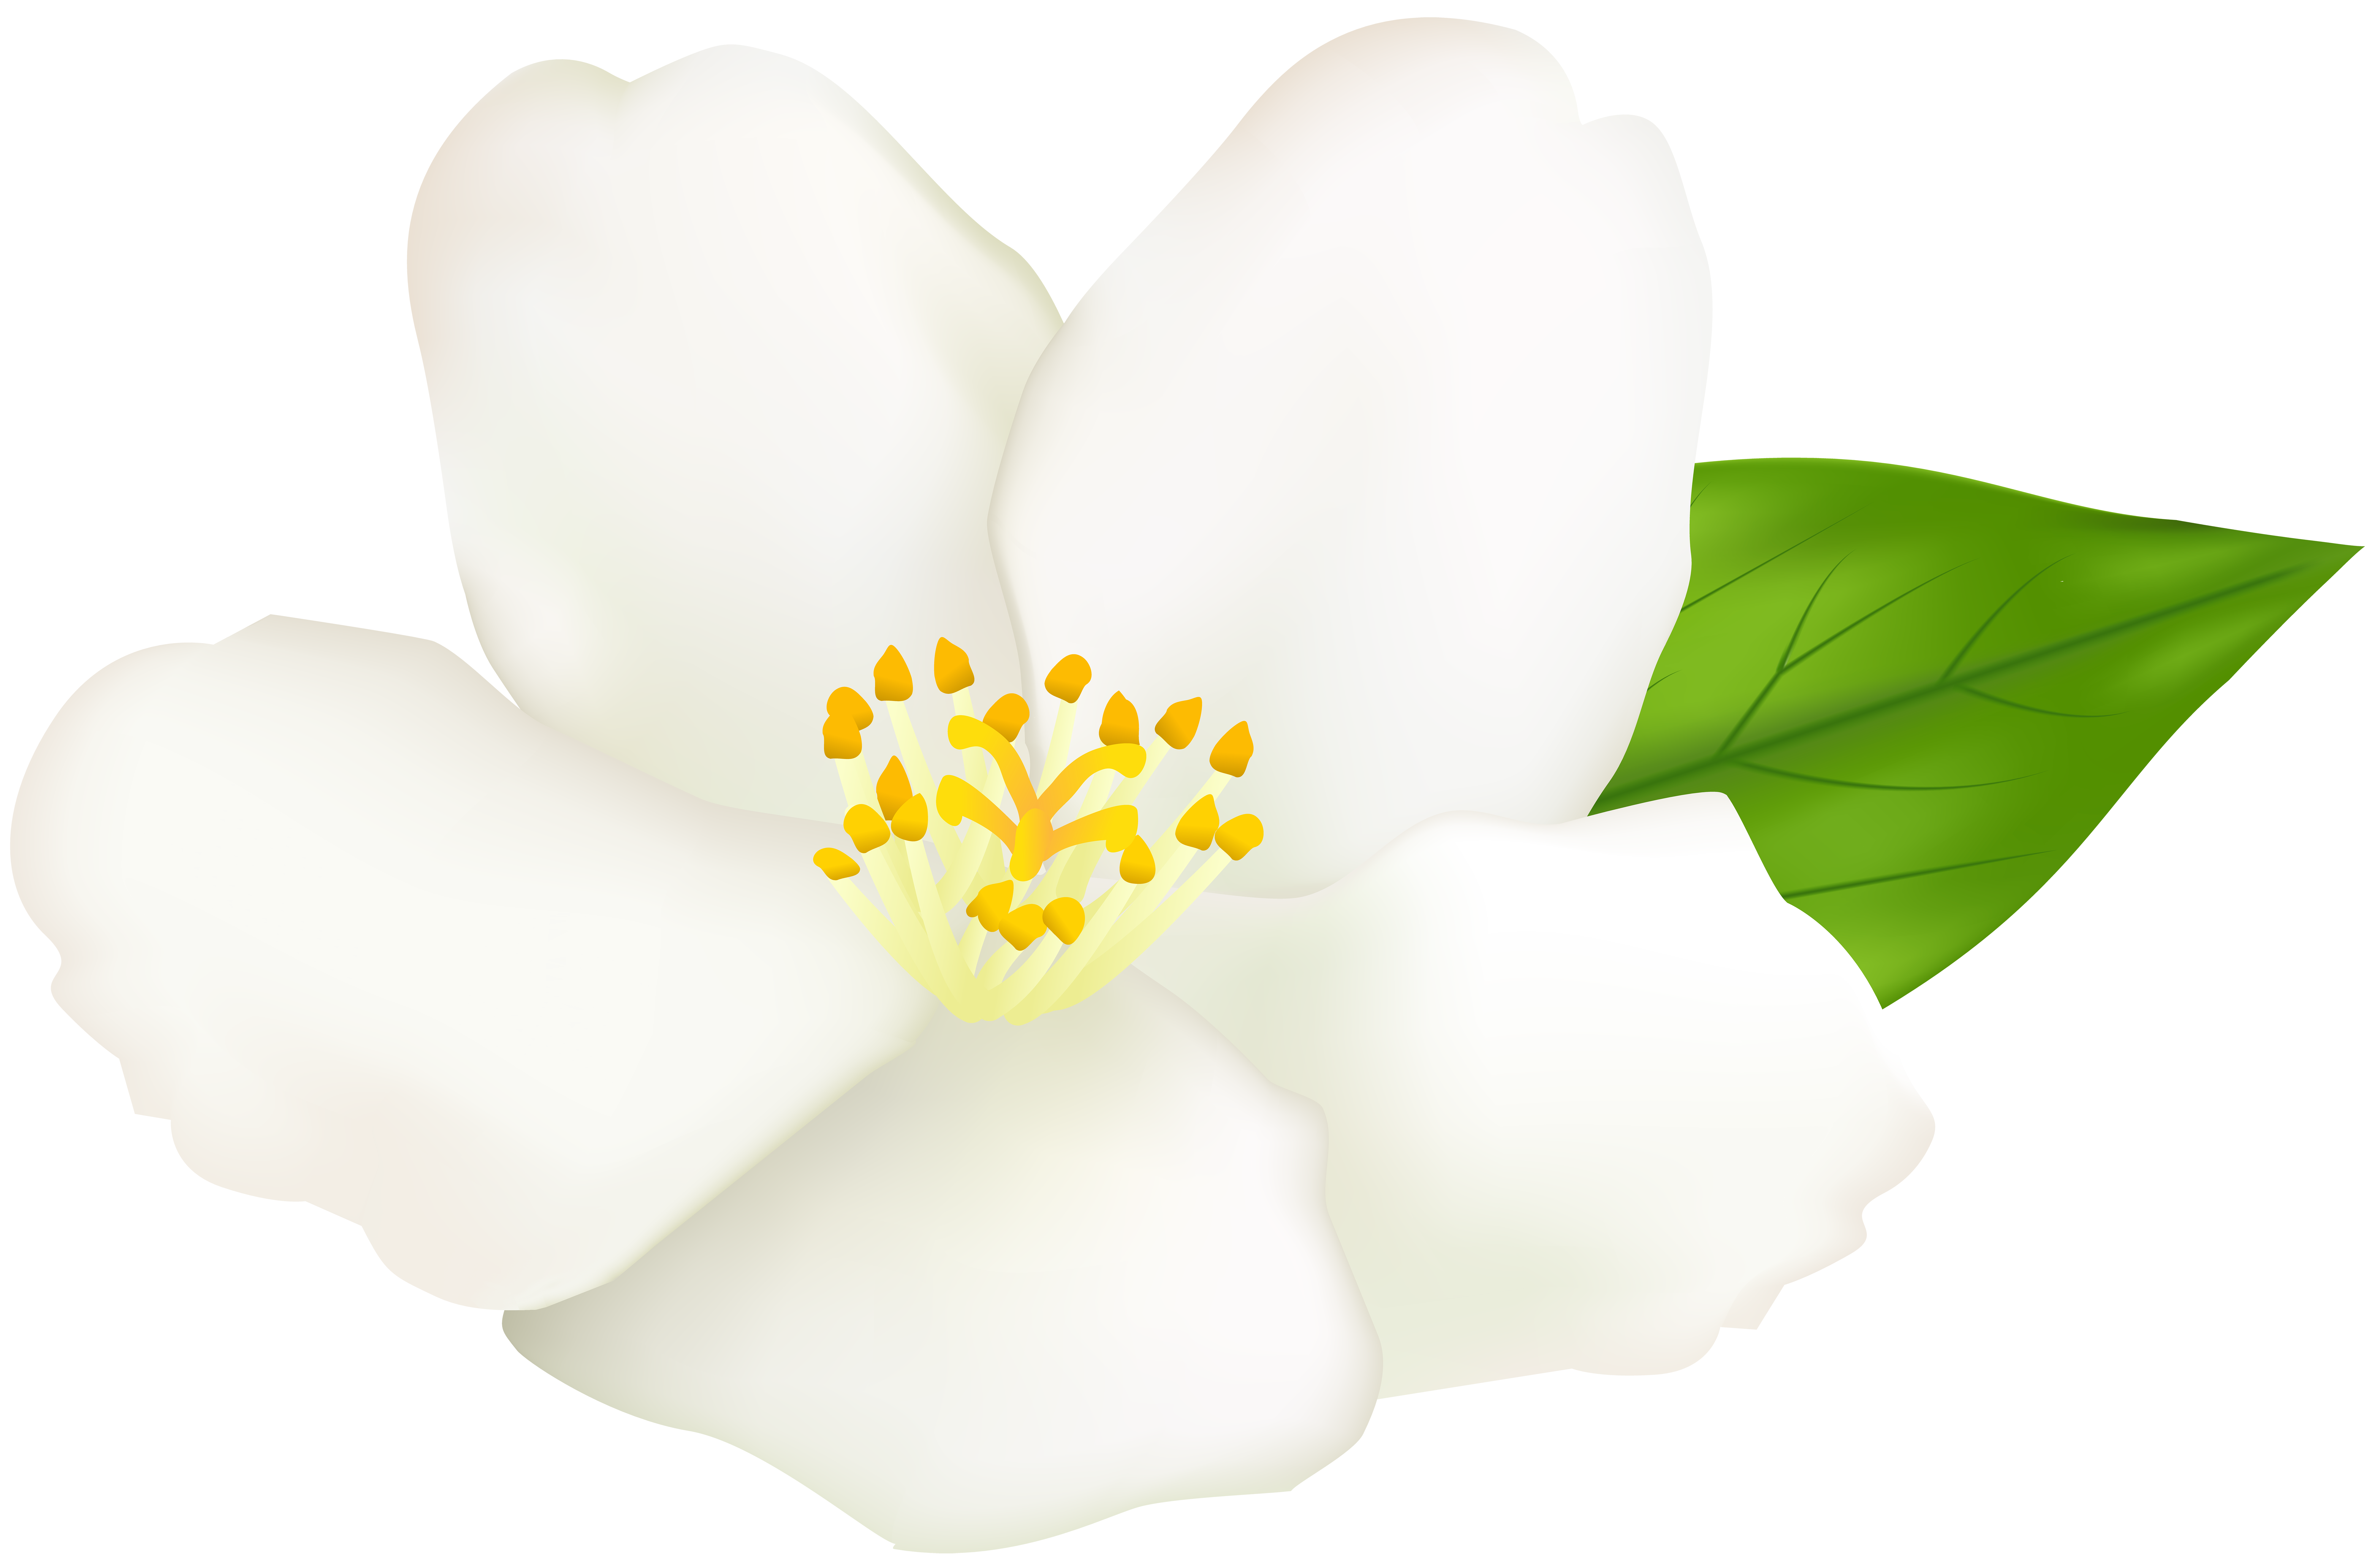 black and white stock Flower at getdrawings com. Magnolia clipart outline.